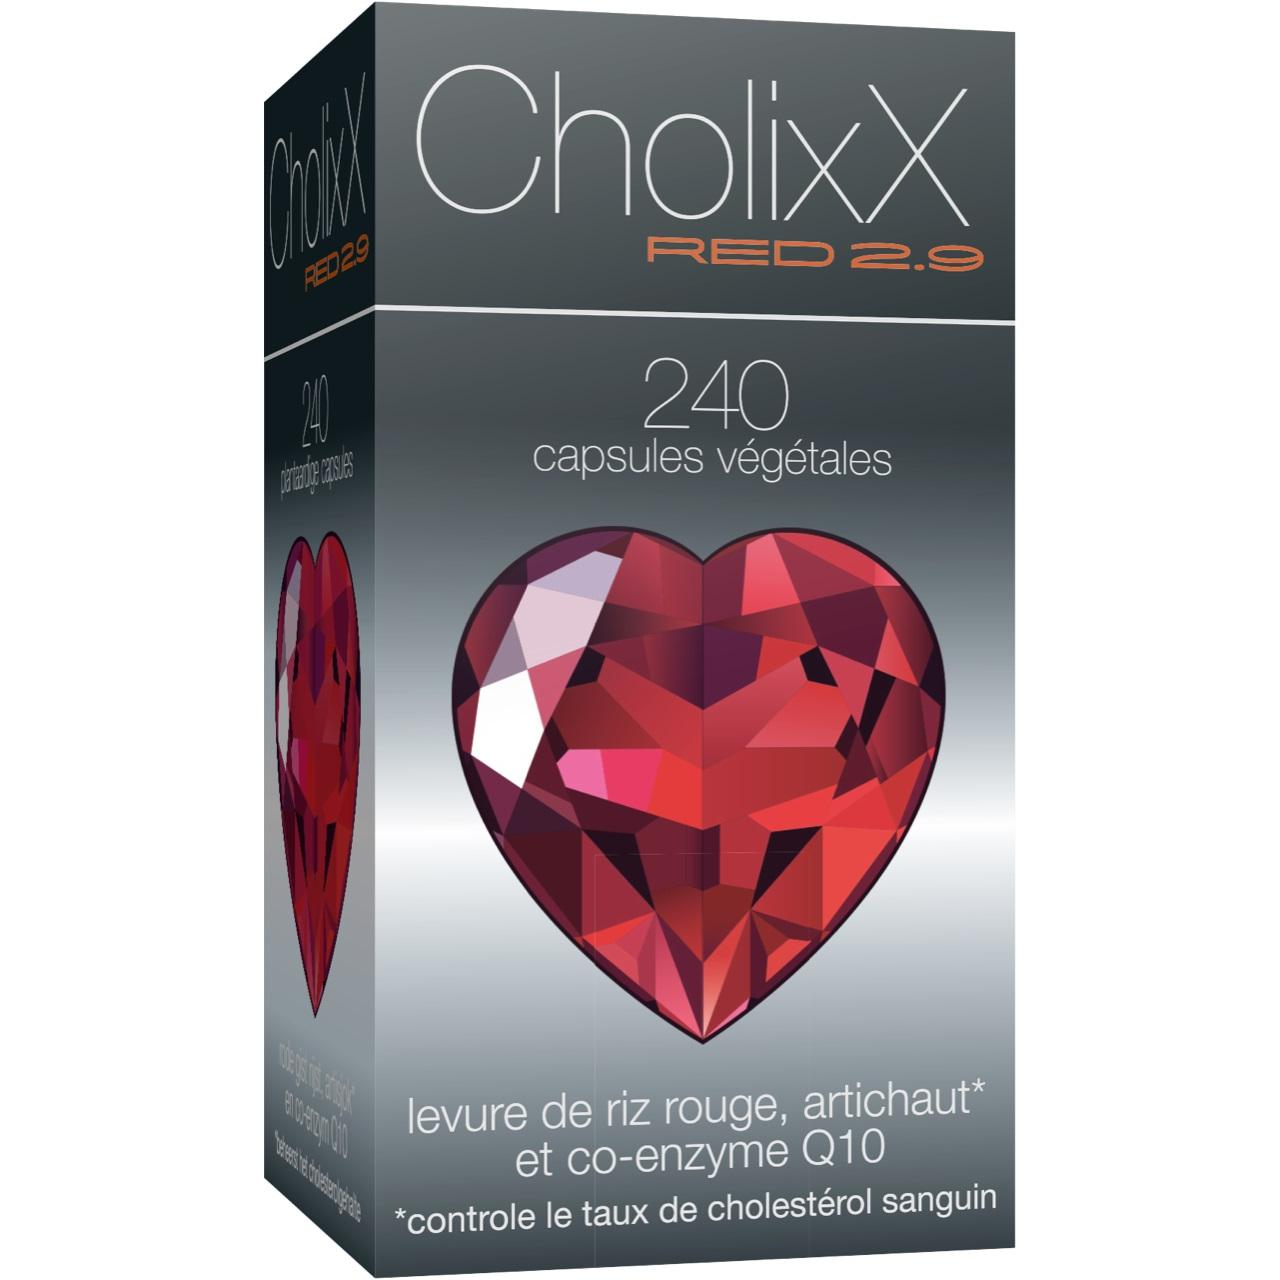 Image of CholIxx Red 2.9